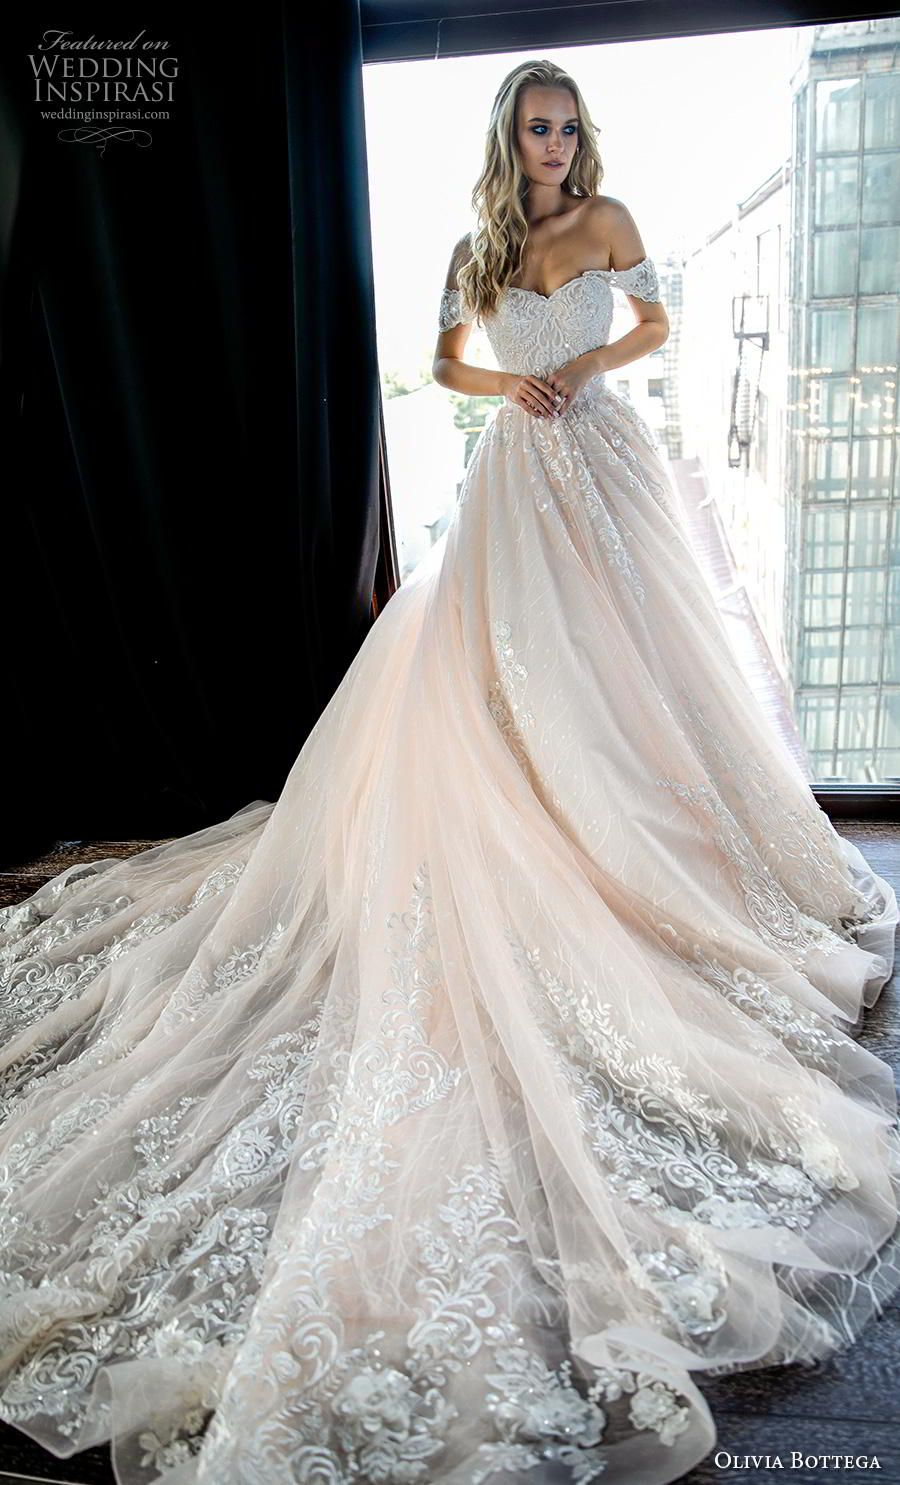 Olivia Bottega 2019 Wedding Dresses Dream Wedding Dresses